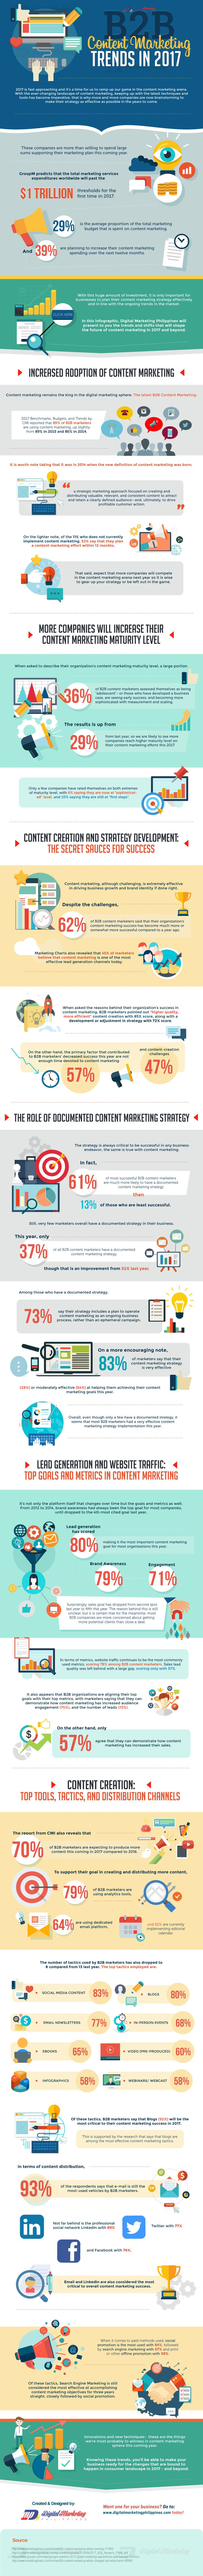 Top Content Marketing Trends to Watch in 2017  [Infographic]